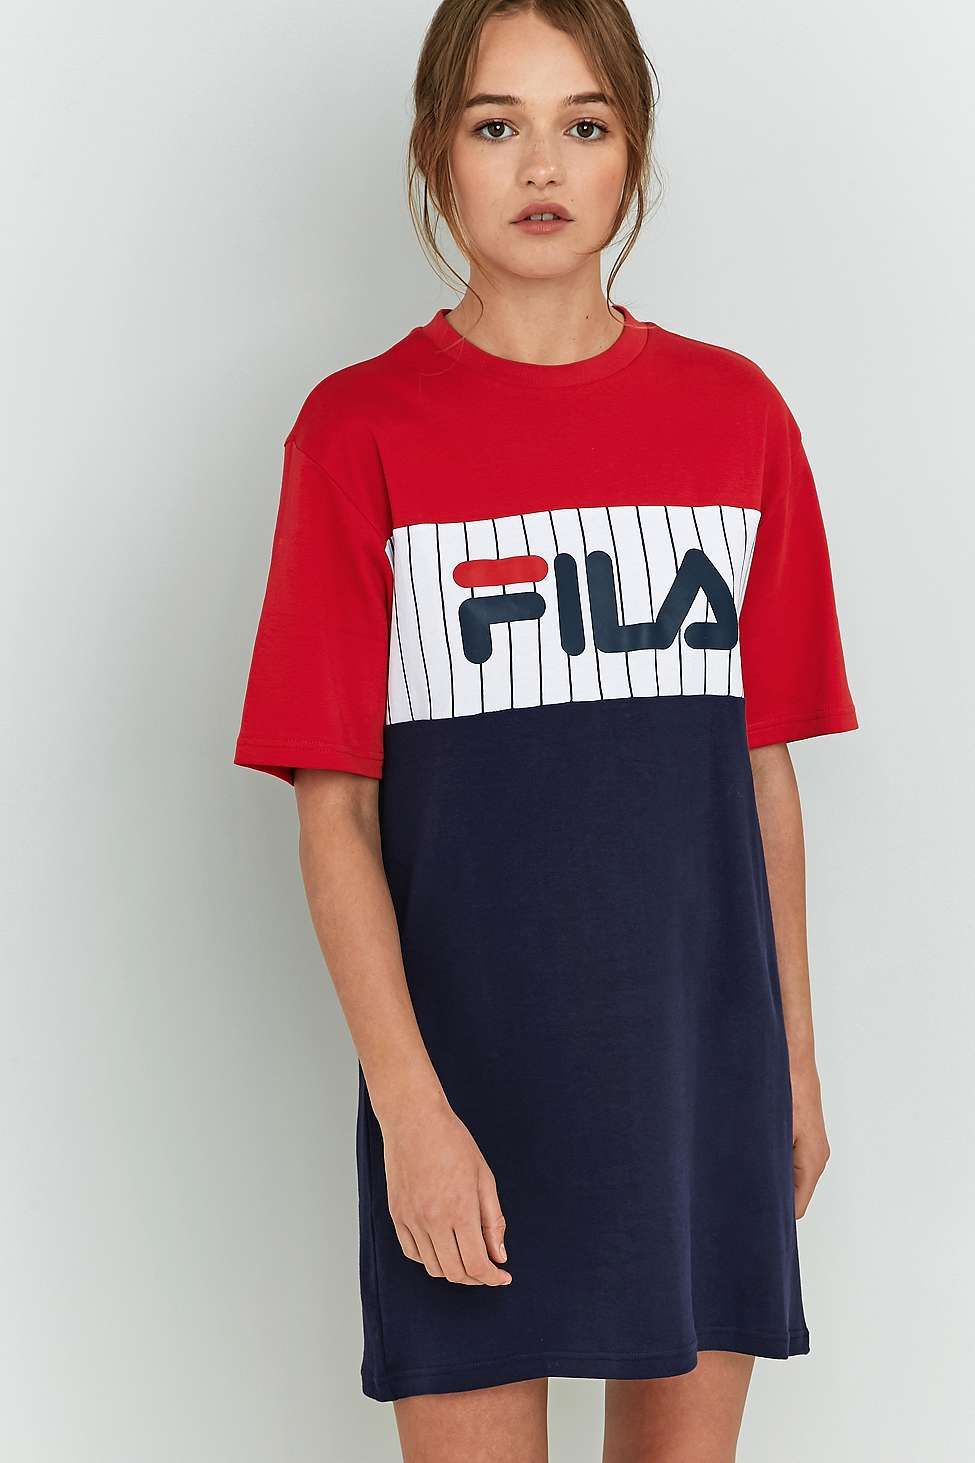 fila robe t shirt ruby tenue v tements et tenues. Black Bedroom Furniture Sets. Home Design Ideas